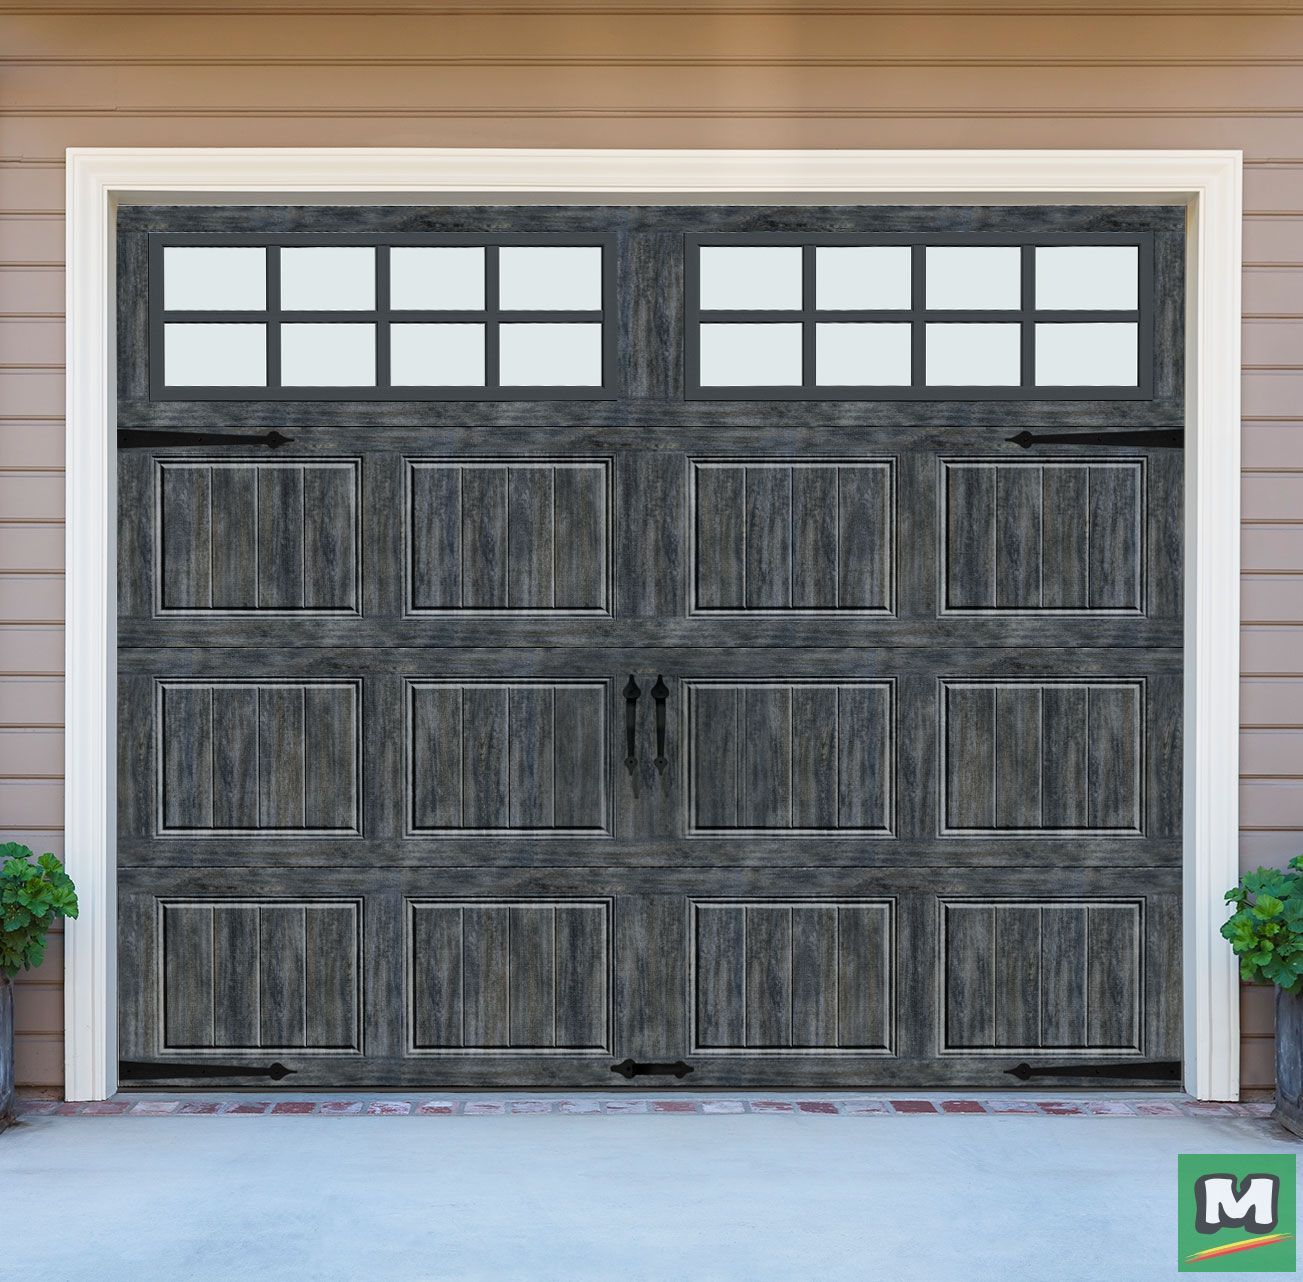 Up Your Curb Appeal With An Ideal Door Designer Series Steel